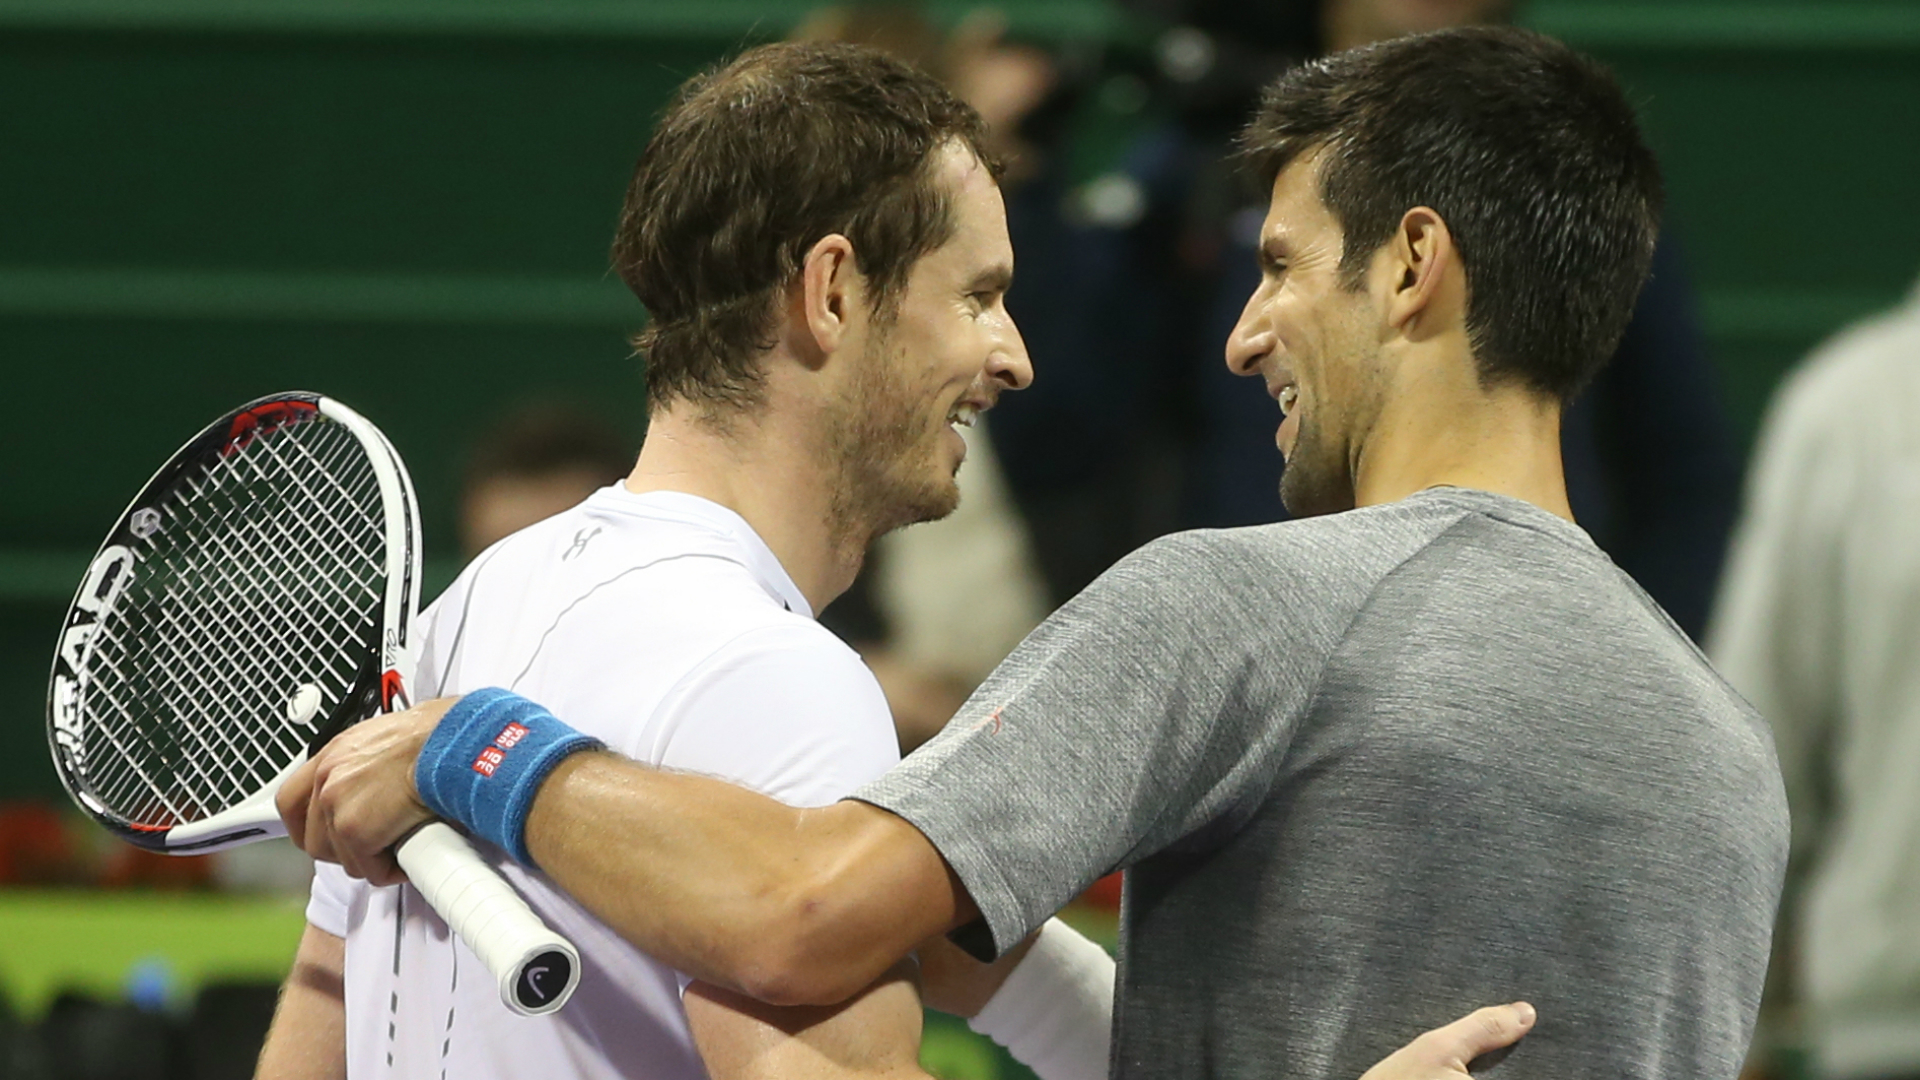 Novak Djokovic paid tribute to Andy Murray in an Instagram post as the curtain prepares to come down on the latter's tennis career.